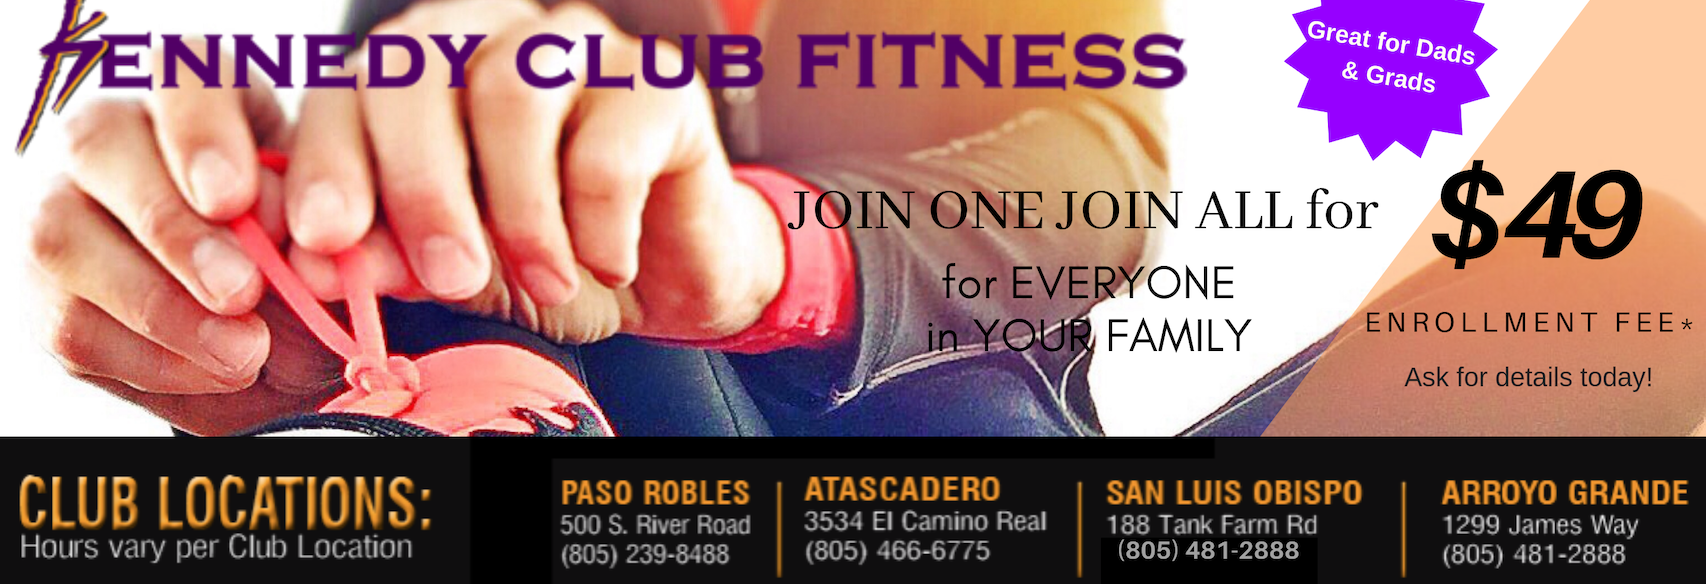 kennedy club fitness banner. four locations in the san luis obispo county